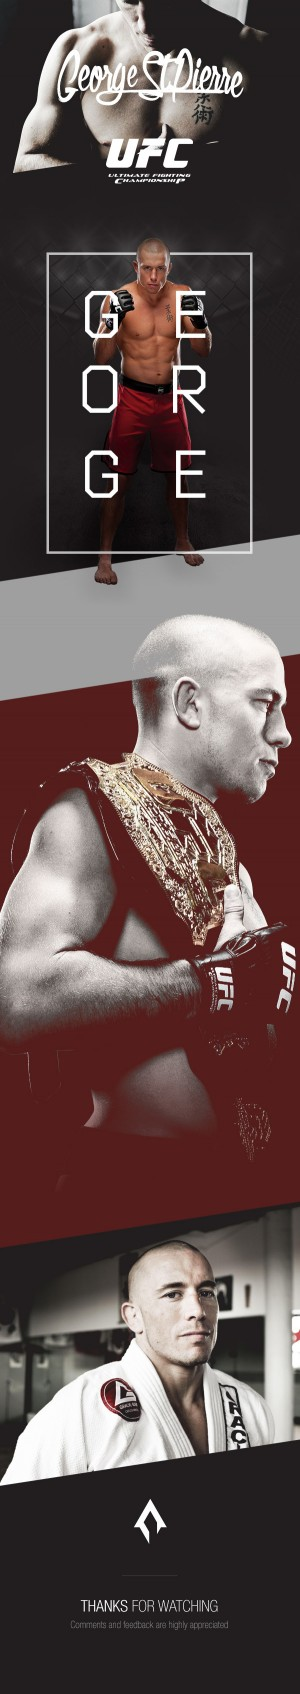 UFC | George St-Pierre :: A presentation for the UFC fighter George St-Pierre